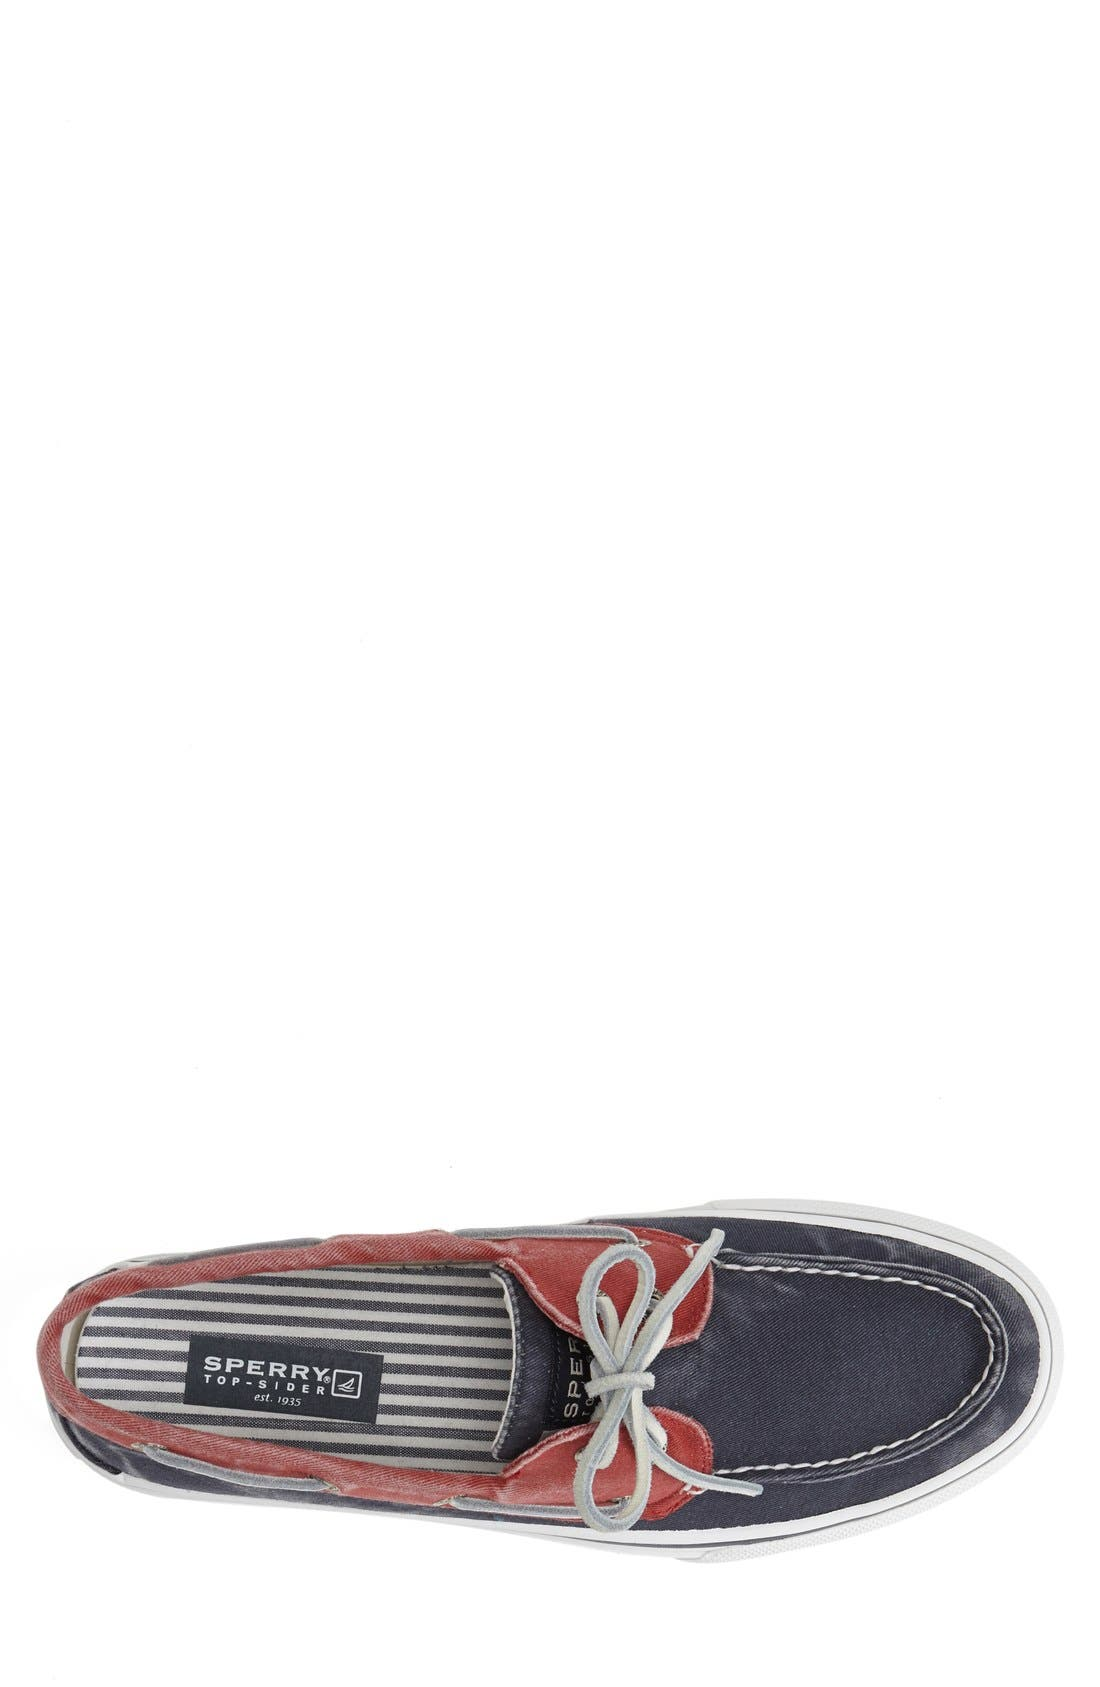 Alternate Image 3  - Sperry 'Bahama' Boat Shoe